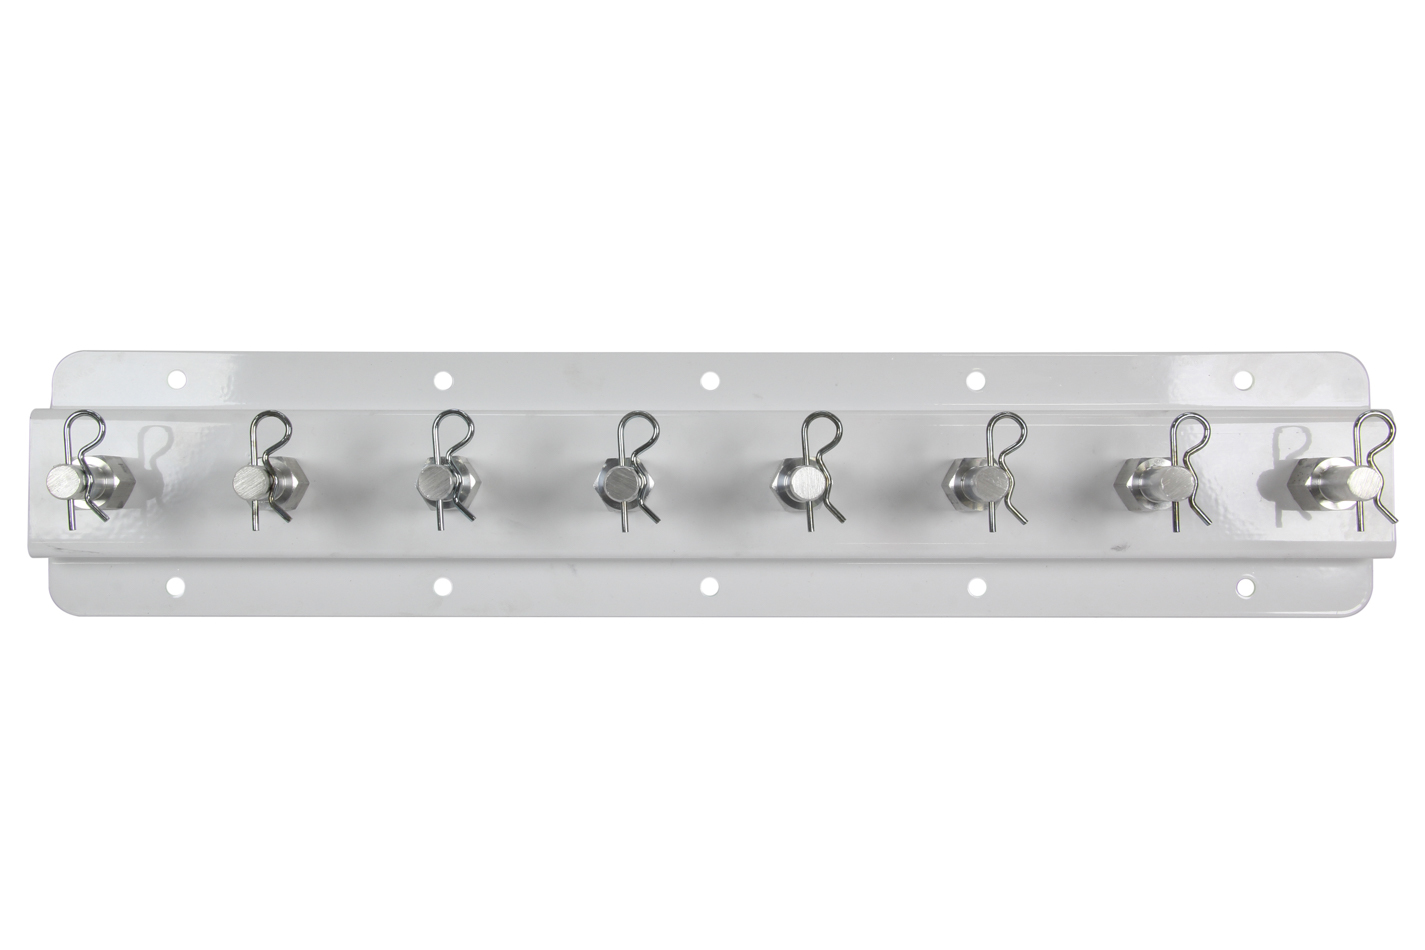 Hepfner Racing Products HRP6524S-S20-WHT Shock Rack, Single Row, Wall Mount, 20 in Long, 8 Shock Capacity, Aluminum, White, Each